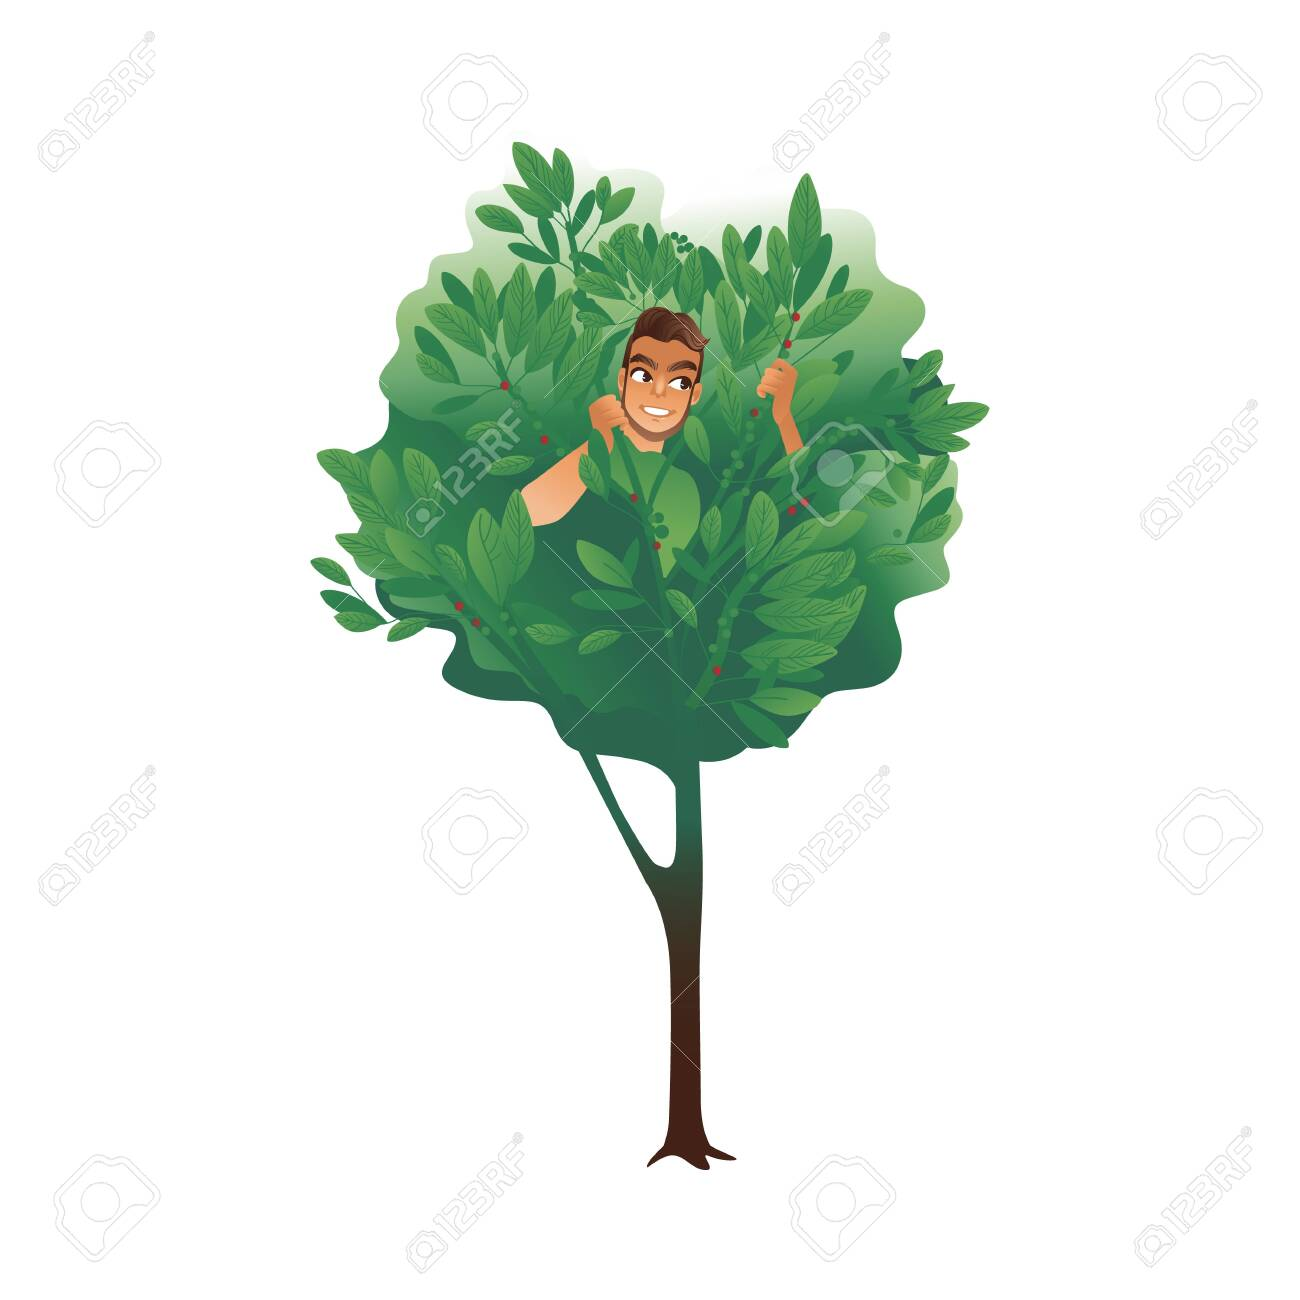 Cartoon Man Hiding In A Tree Summer Nature Drawing Of Male Character Royalty Free Cliparts Vectors And Stock Illustration Image 128947668 Max 3ds fbx oth obj. cartoon man hiding in a tree summer nature drawing of male character